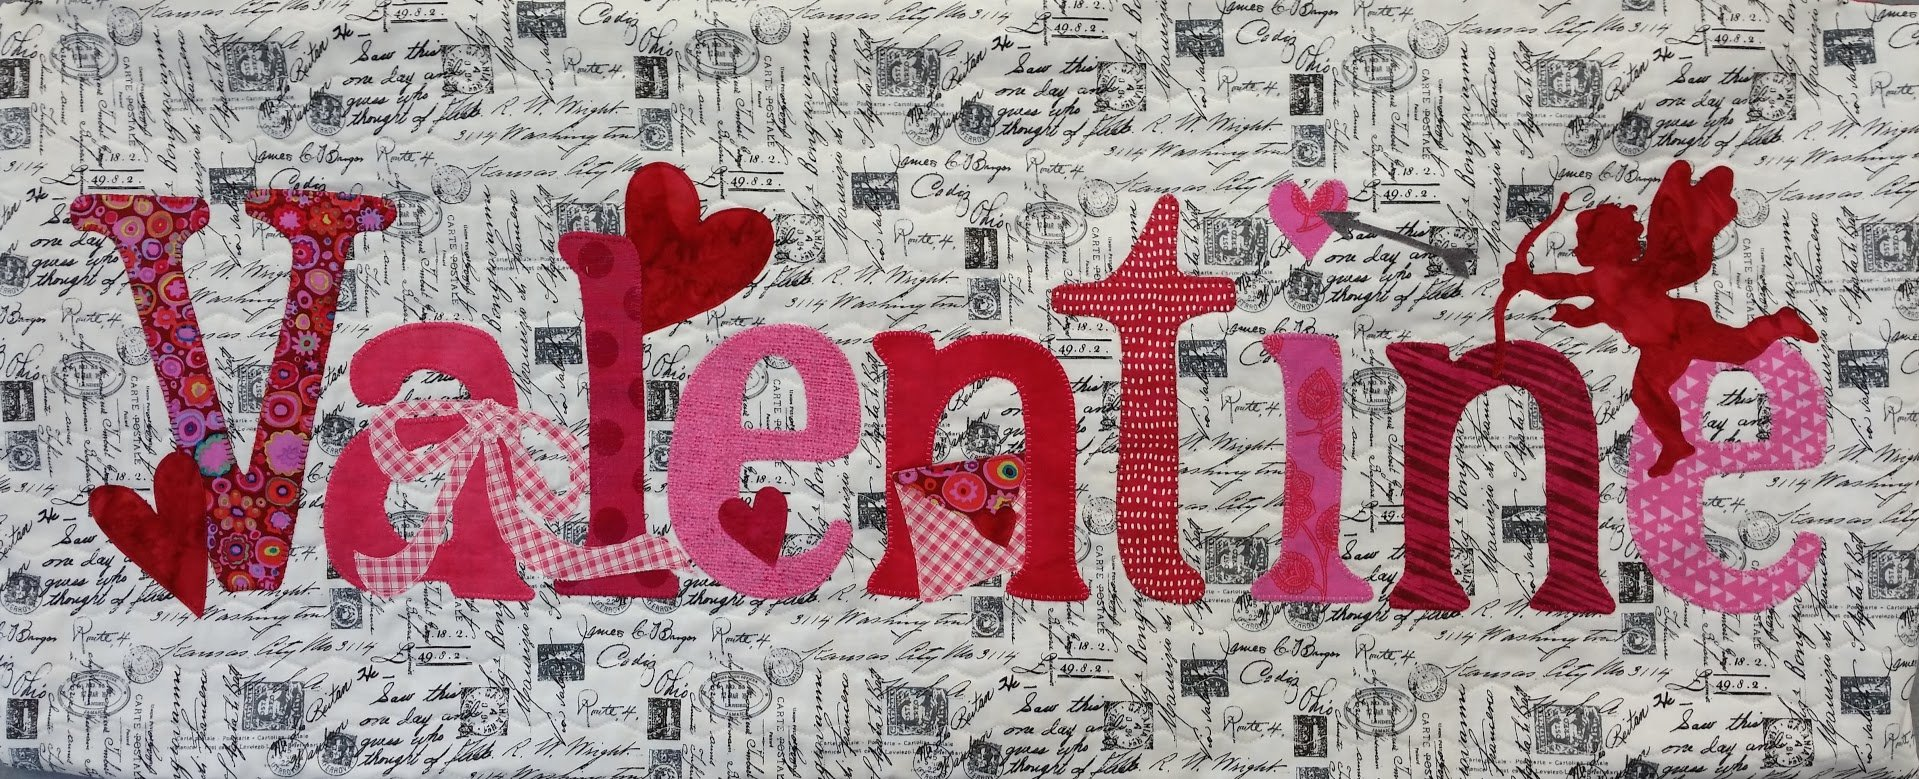 A Year in Words February Valentine Pillow Fabric Kit